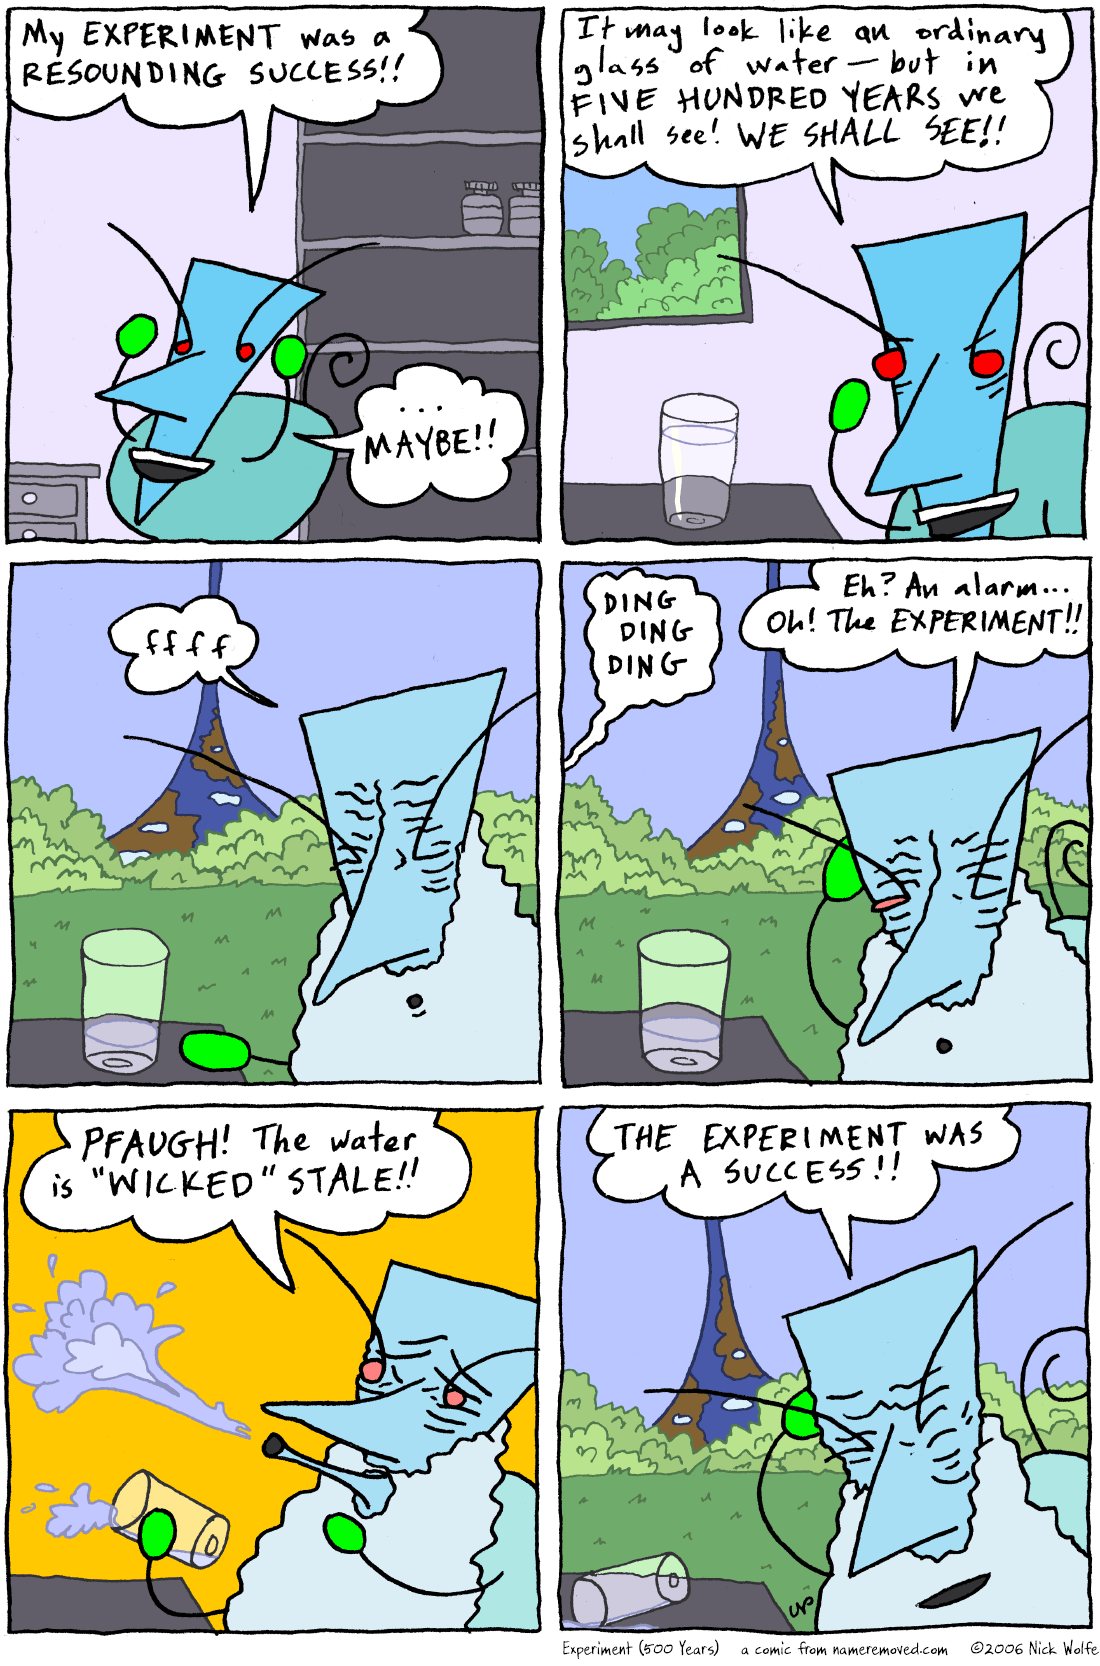 Experiment (500 Years)